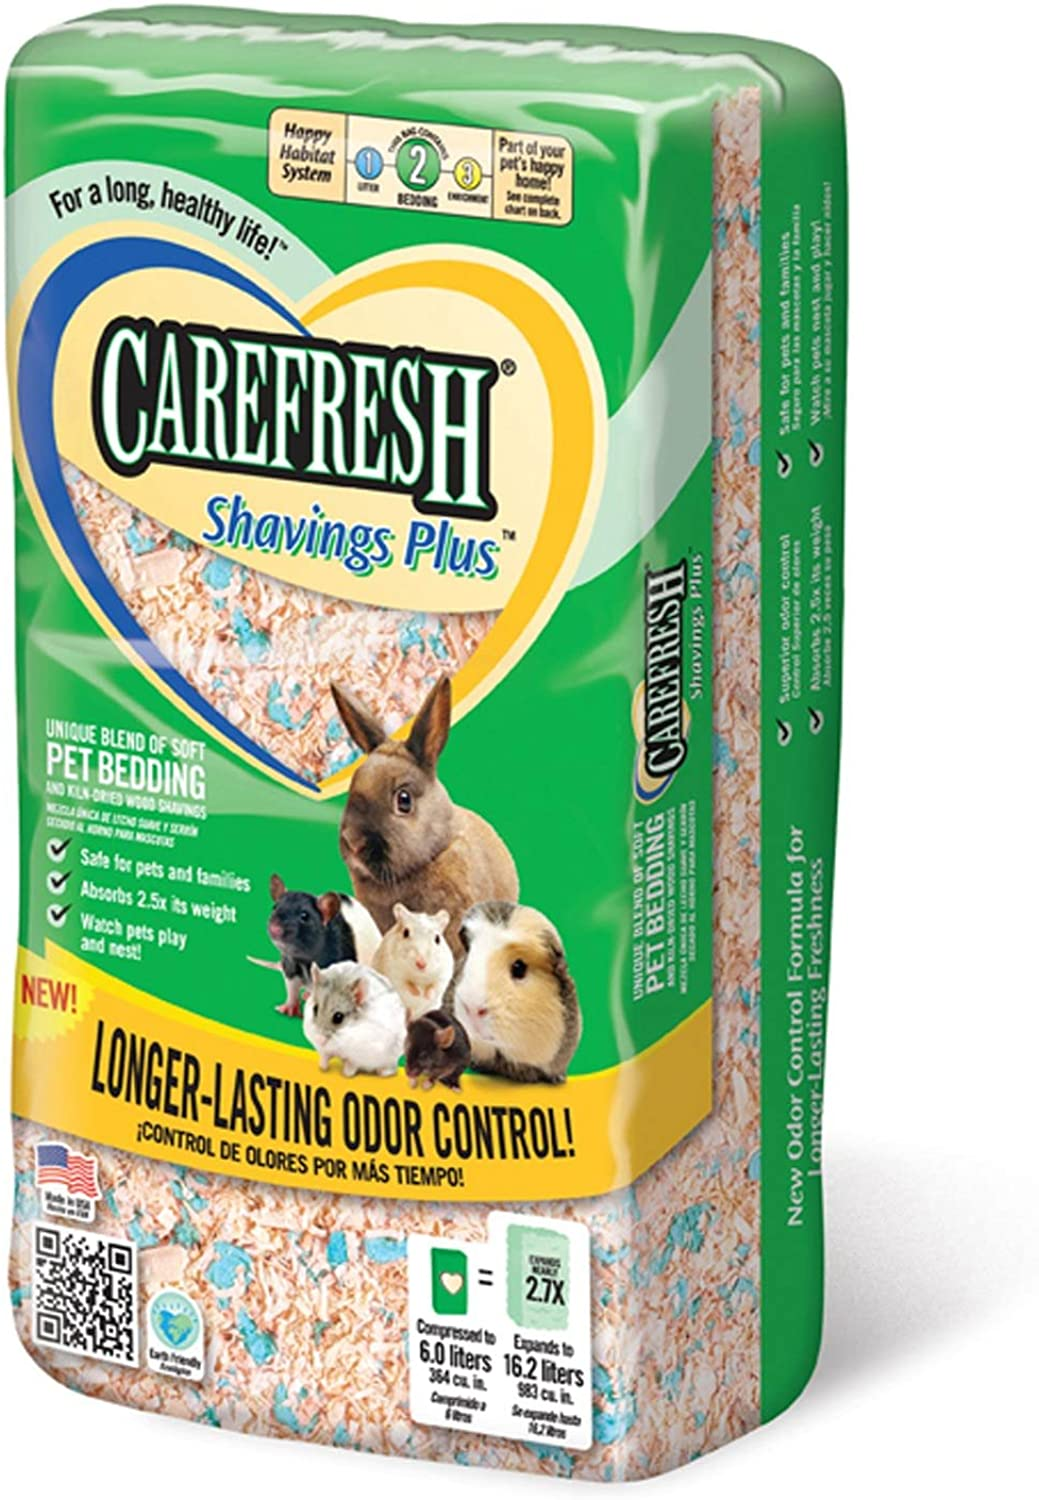 Carefresh Shavings Plus 14ltr 6ct Case